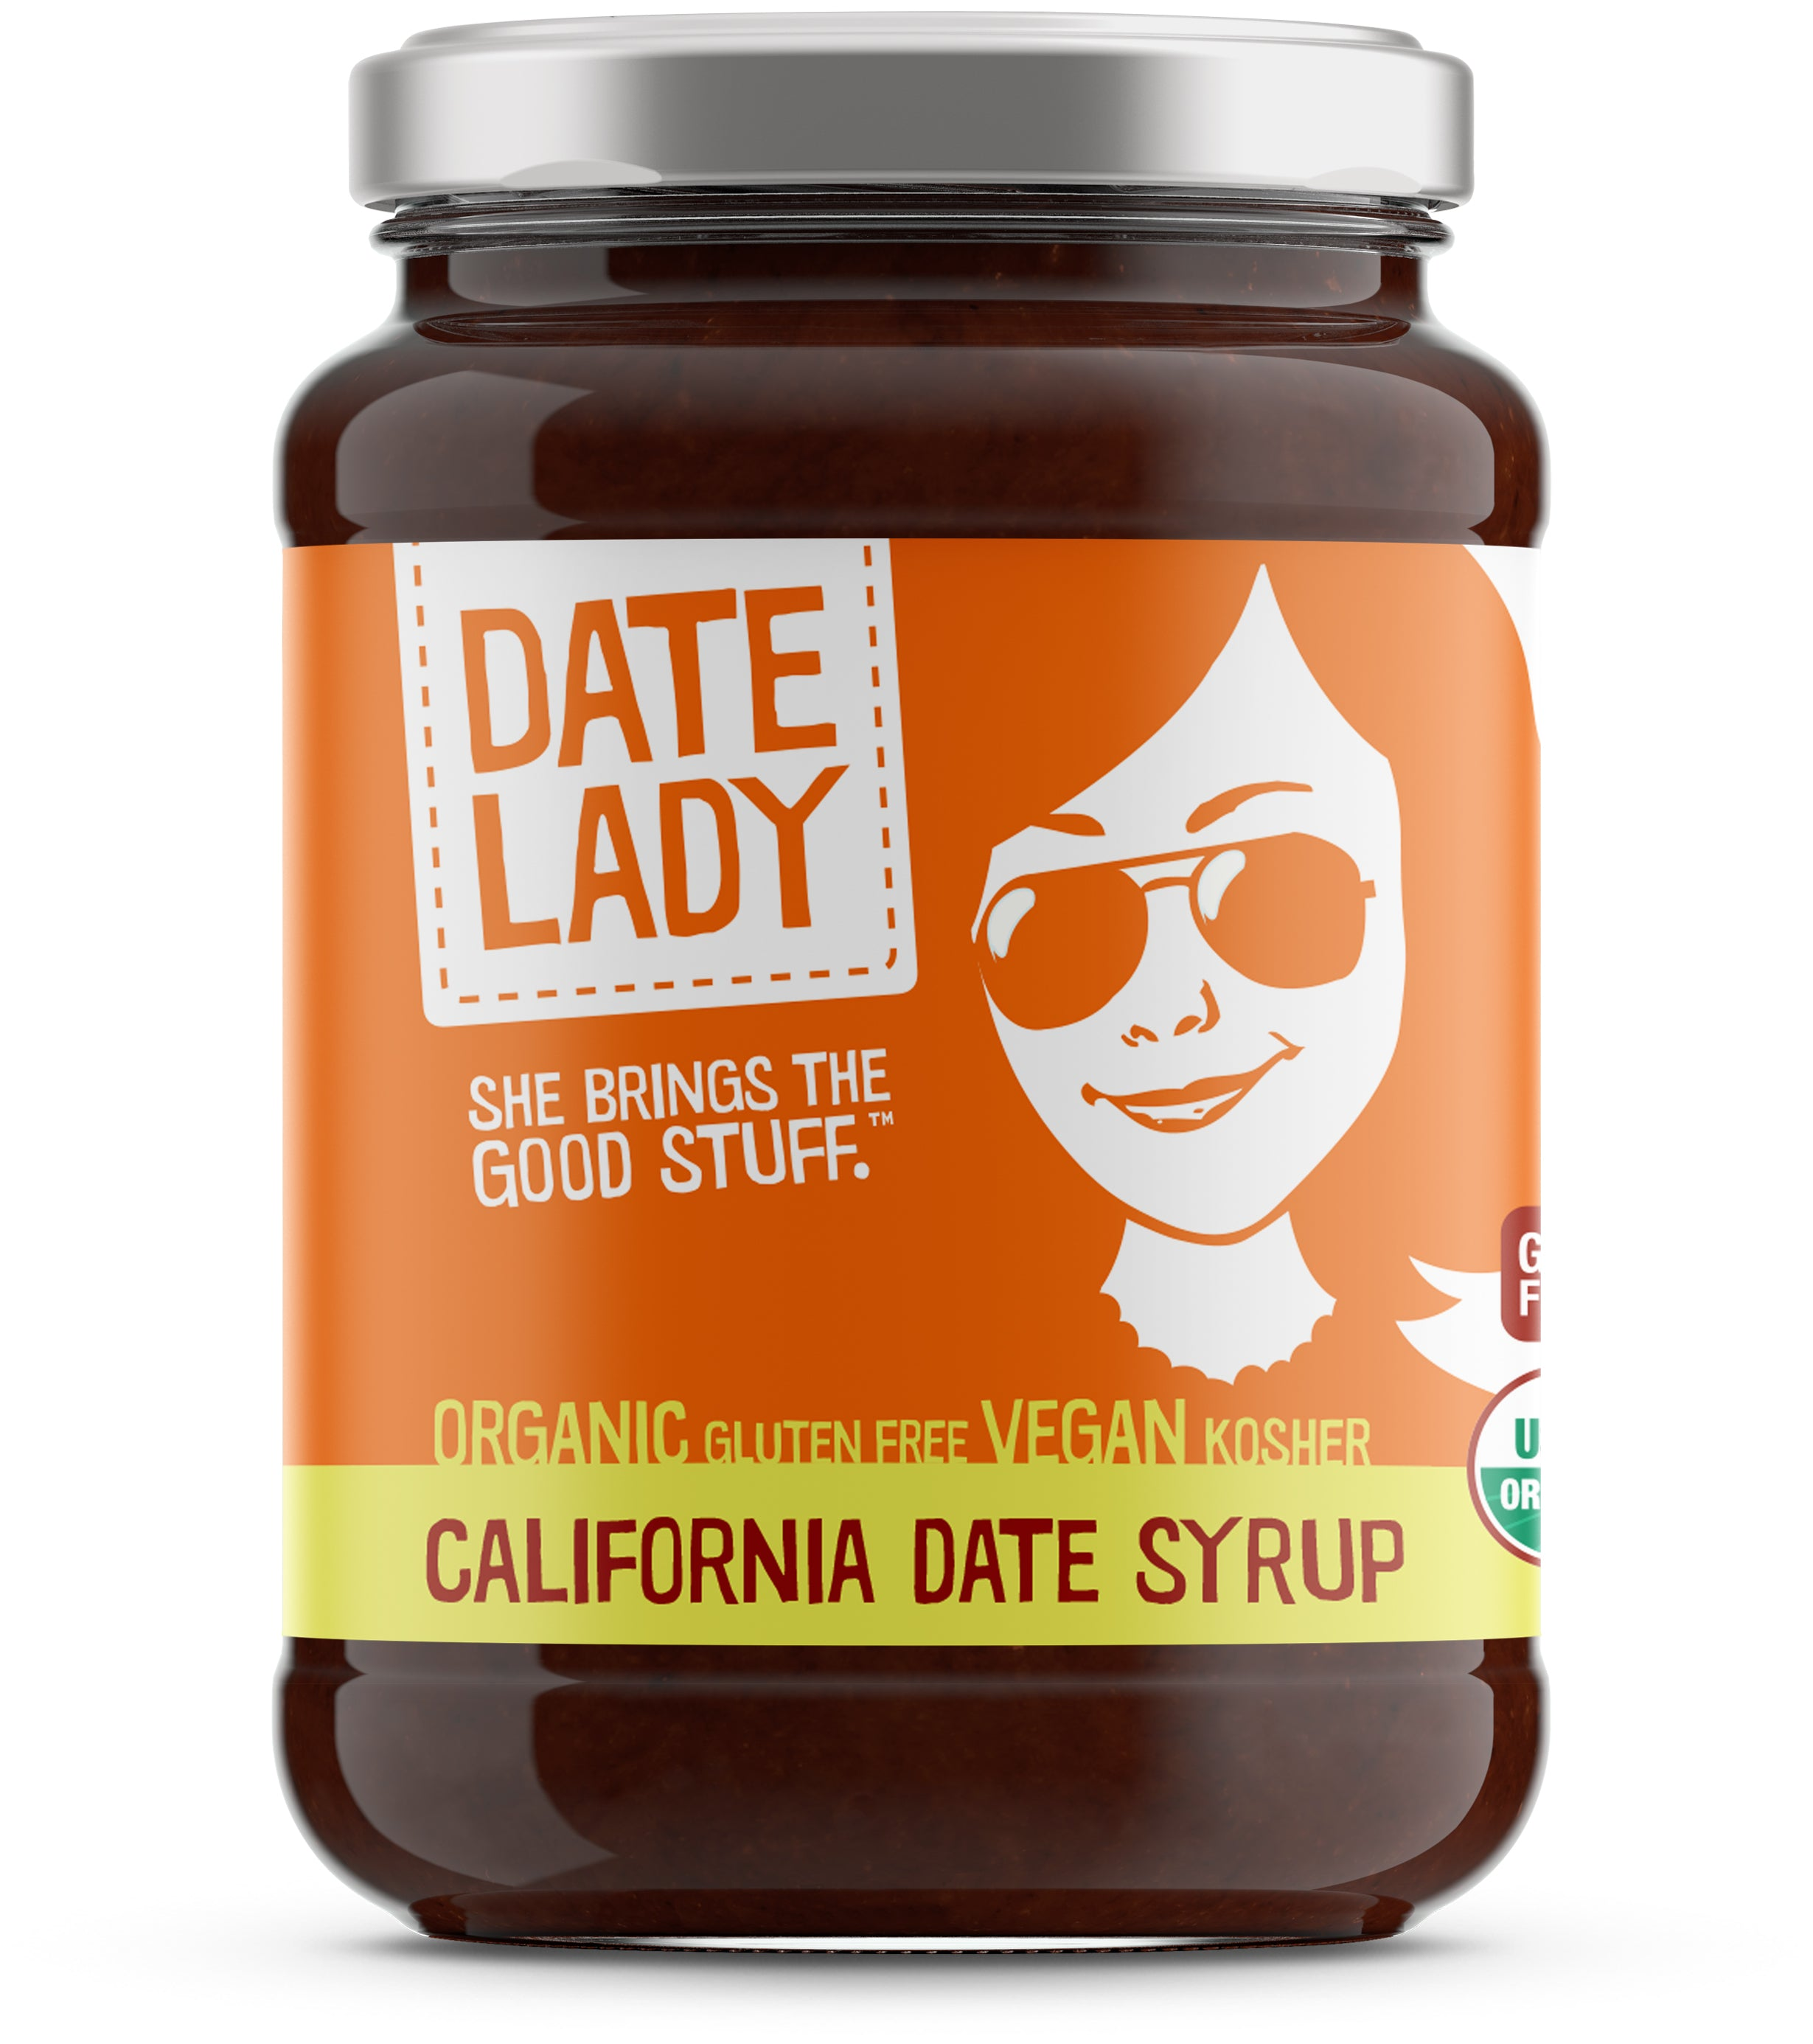 Date Lady California Date Syrup